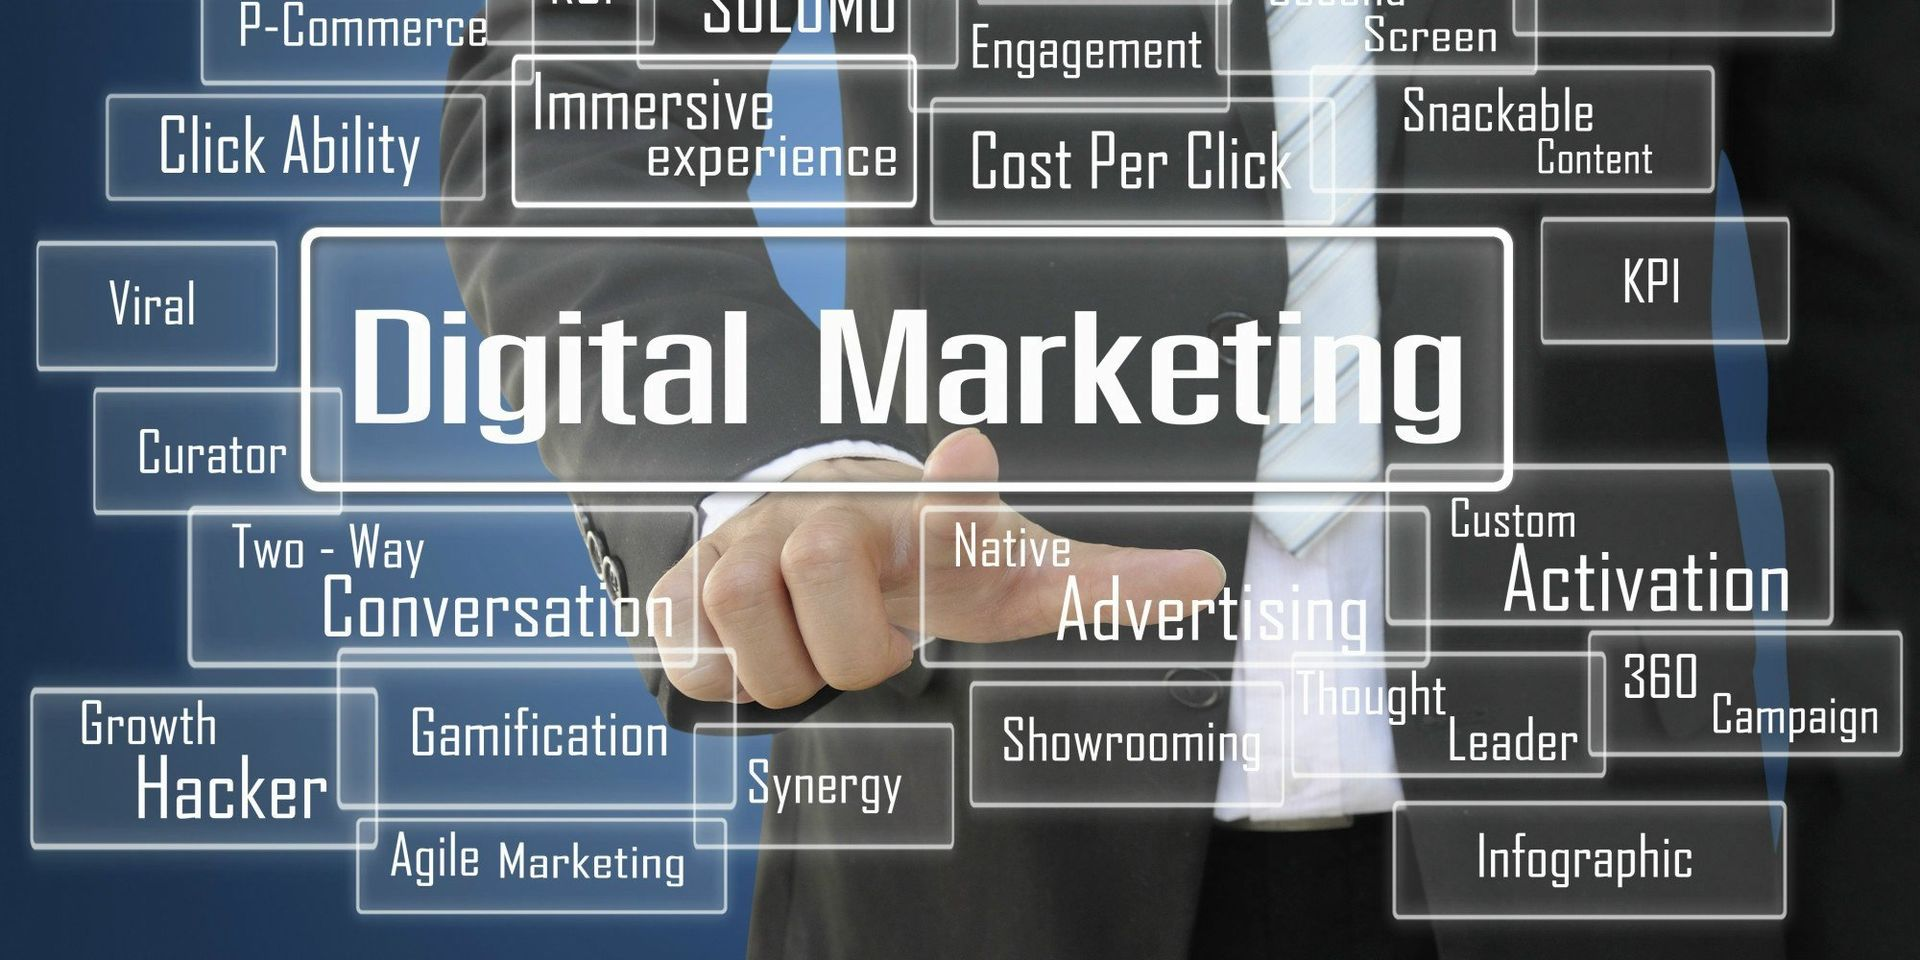 Strategic Marketing Tips Geared Towards The Mobile World